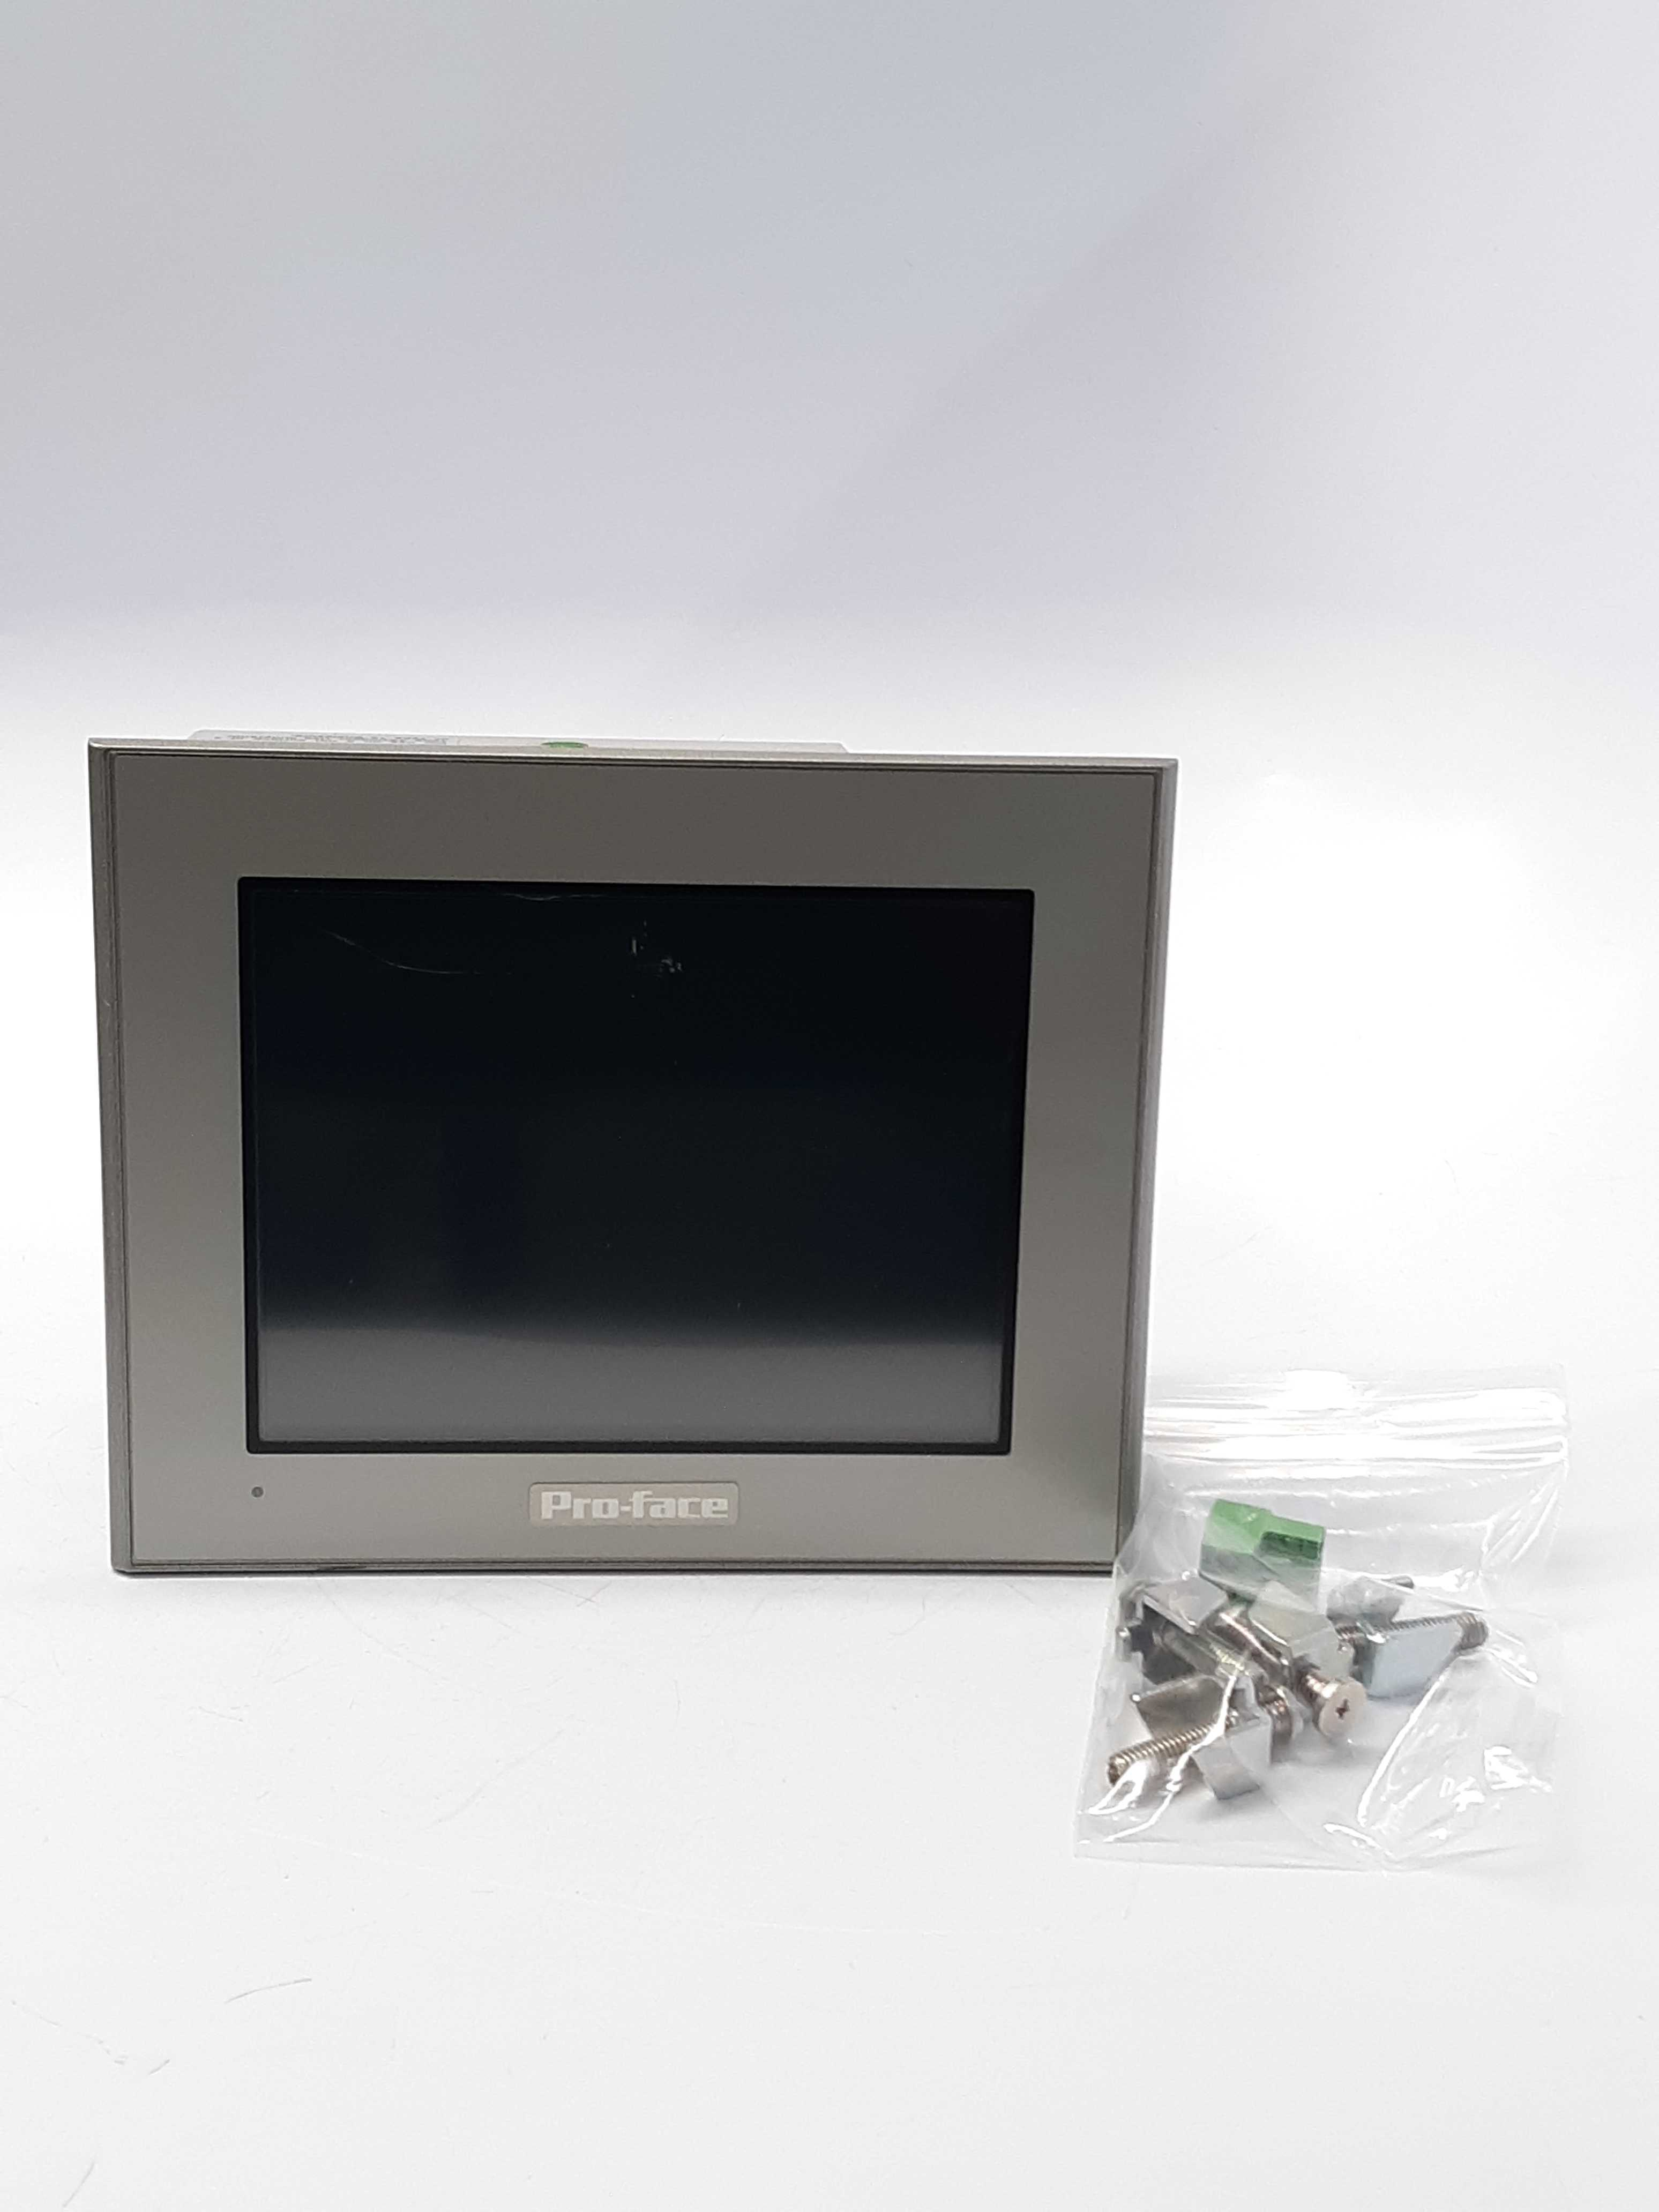 Pro-face 3280007-01 Touch Screen Panel